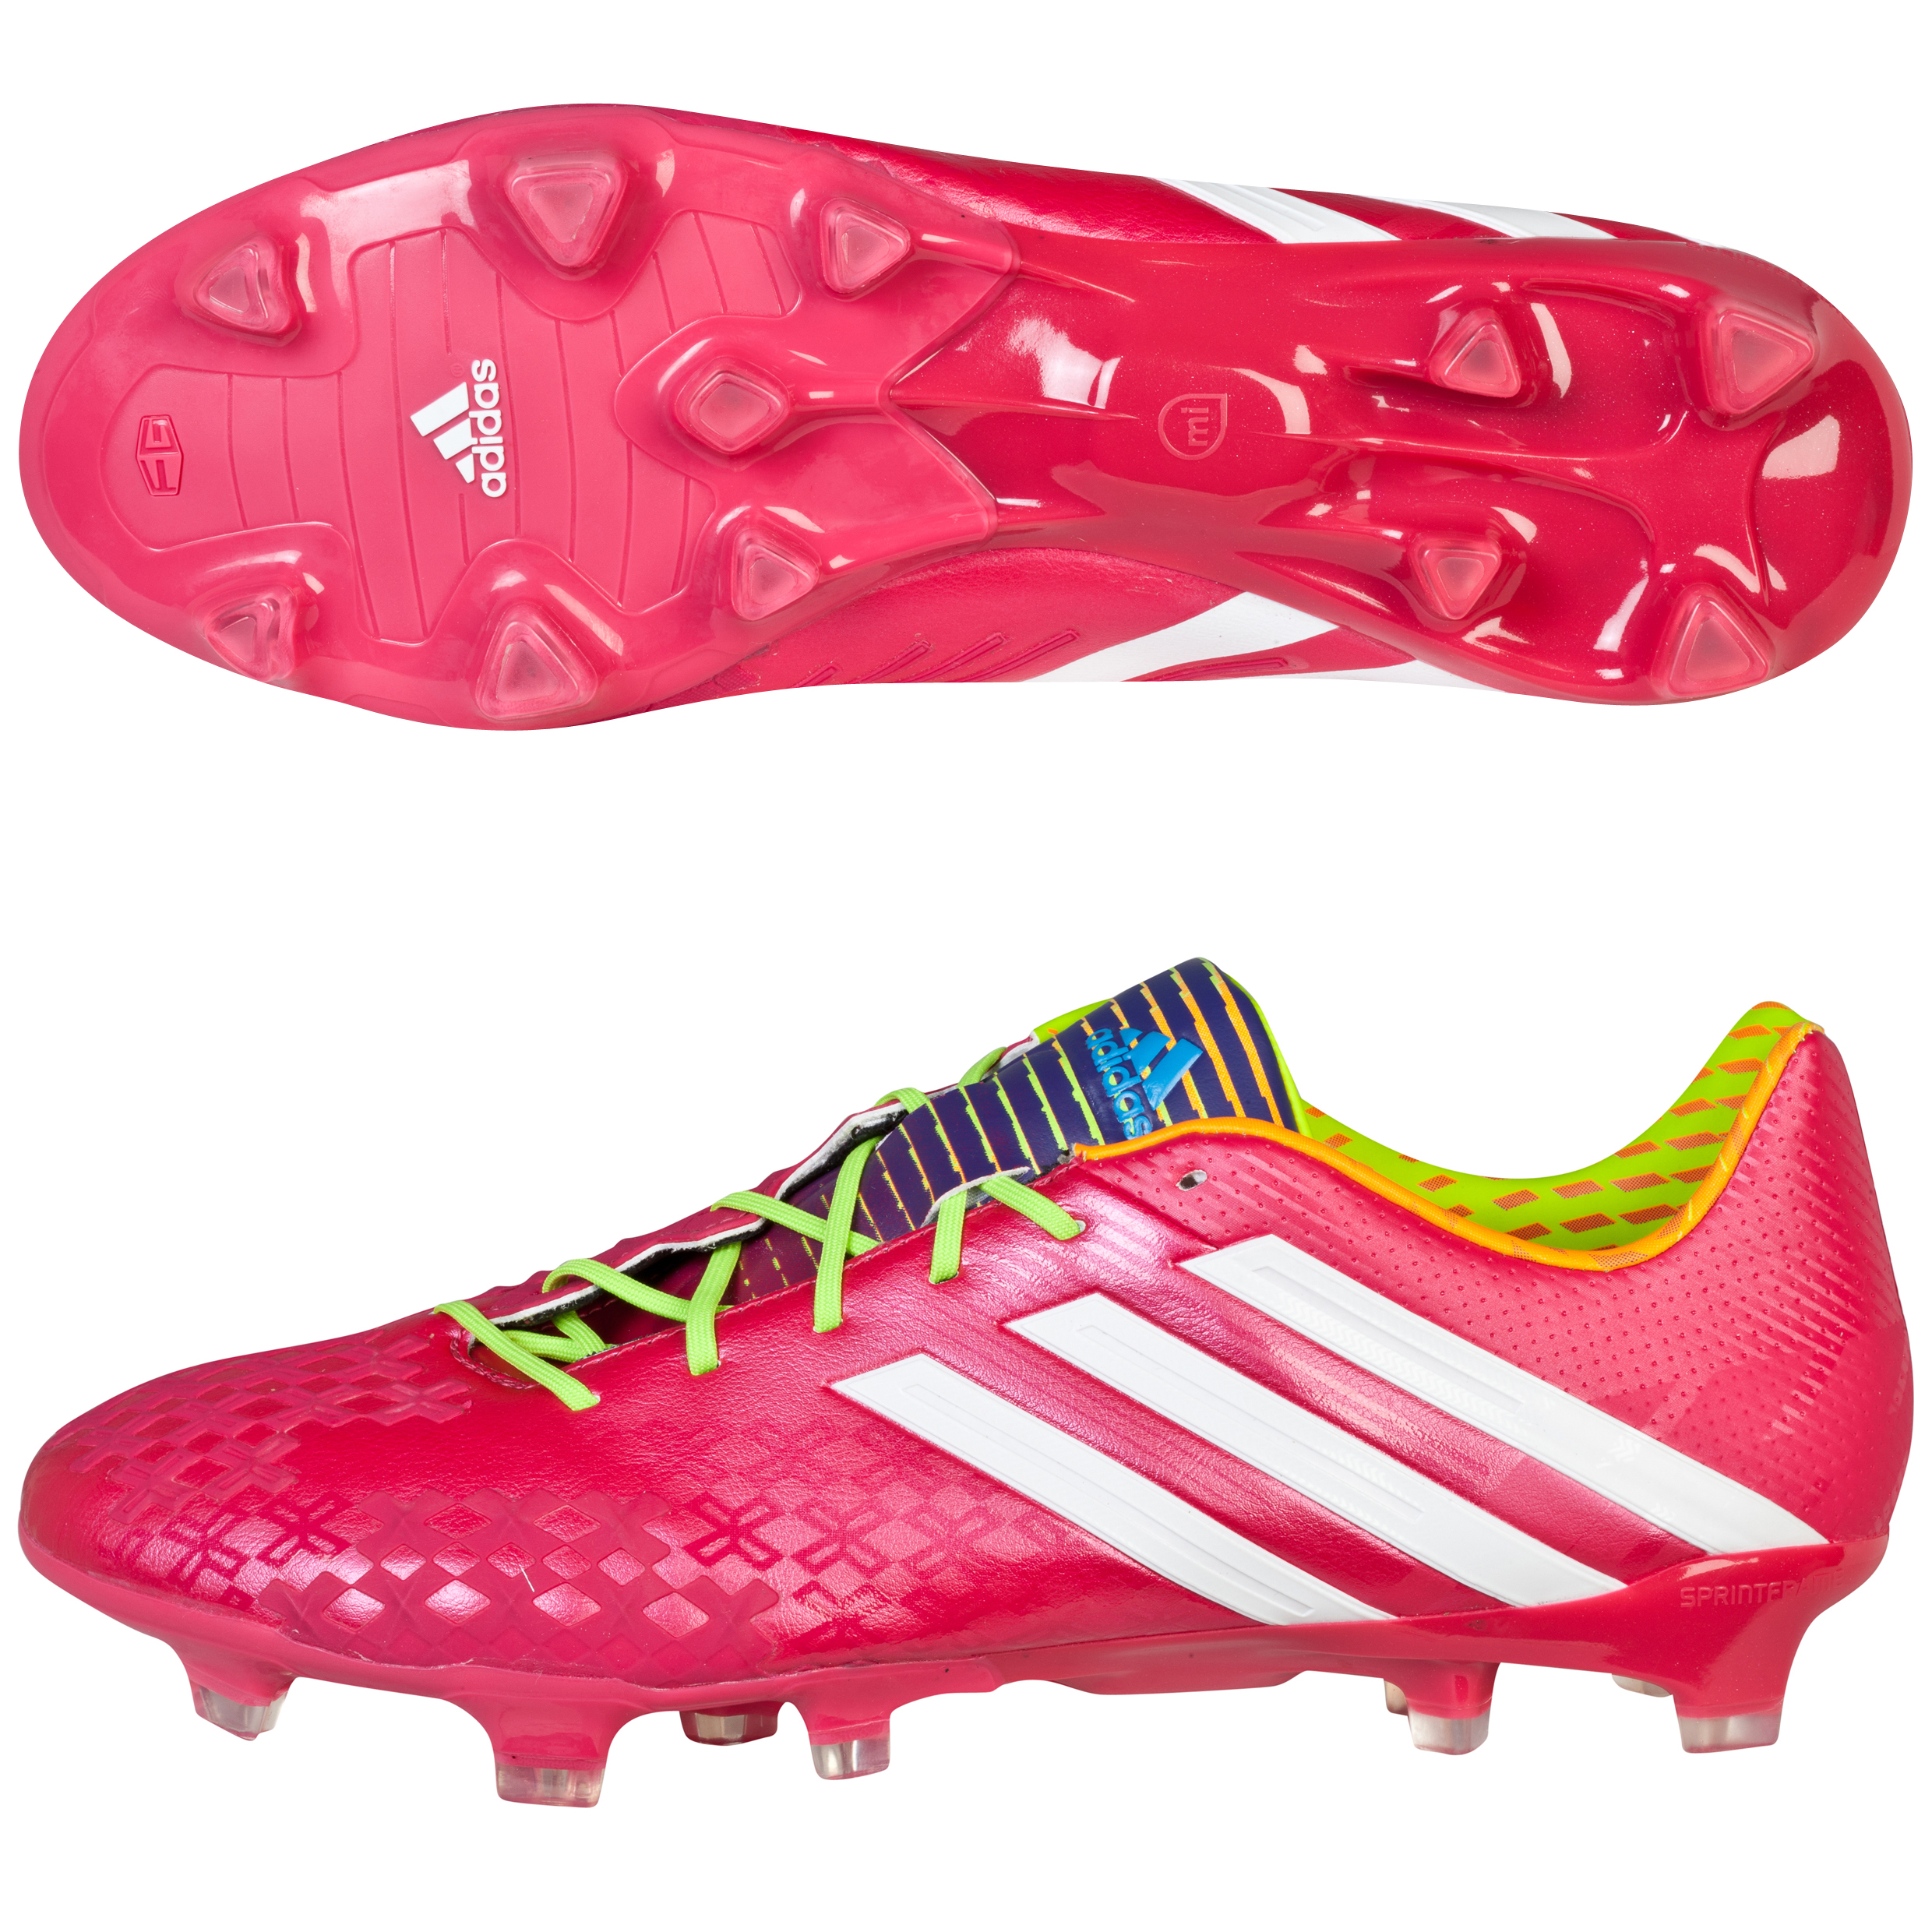 Adidas Predator LZ TRX Firm Ground Pink